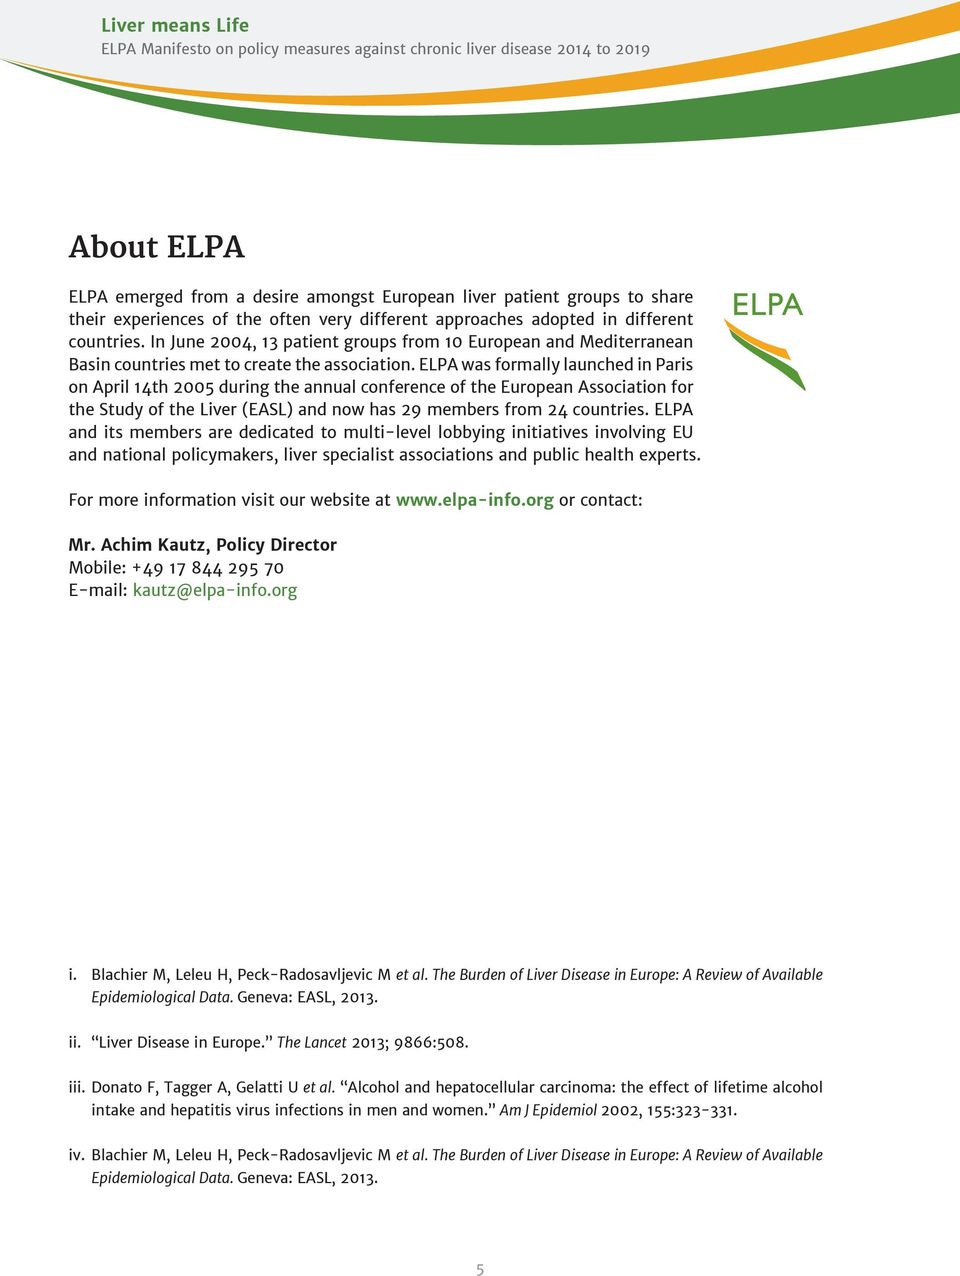 ELPA was formally launched in Paris on April 14th 2005 during the annual conference of the European Association for the Study of the Liver (EASL) and now has 29 members from 24 countries.